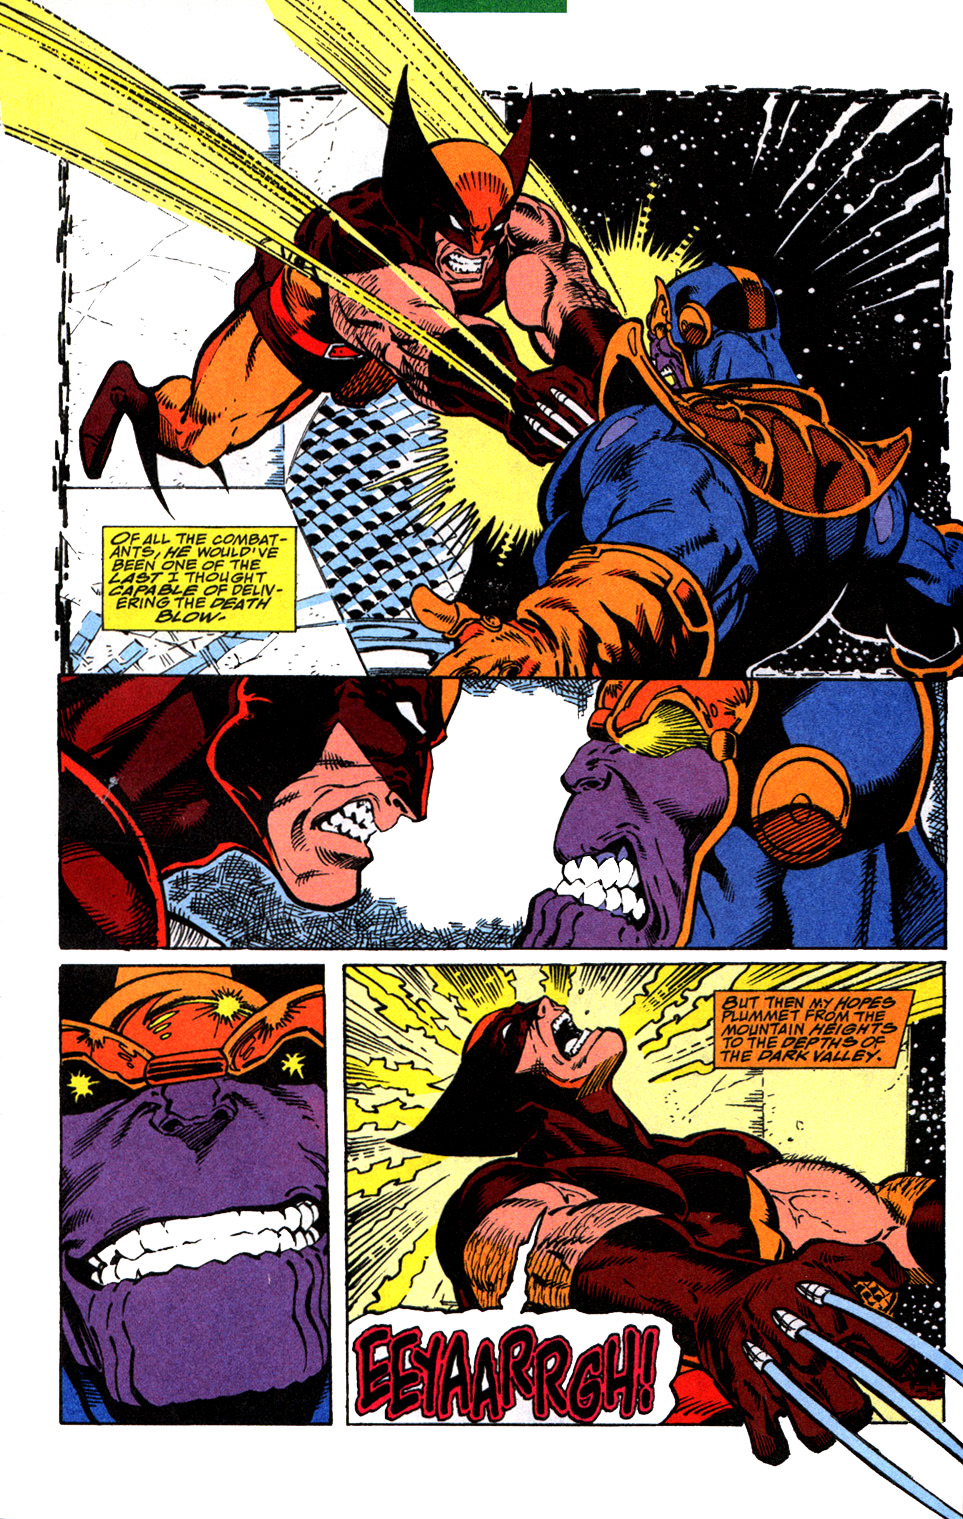 The Infinity Wart Saga Part 1 Issue: The Infinity Gauntlet 8of12 - Gallery